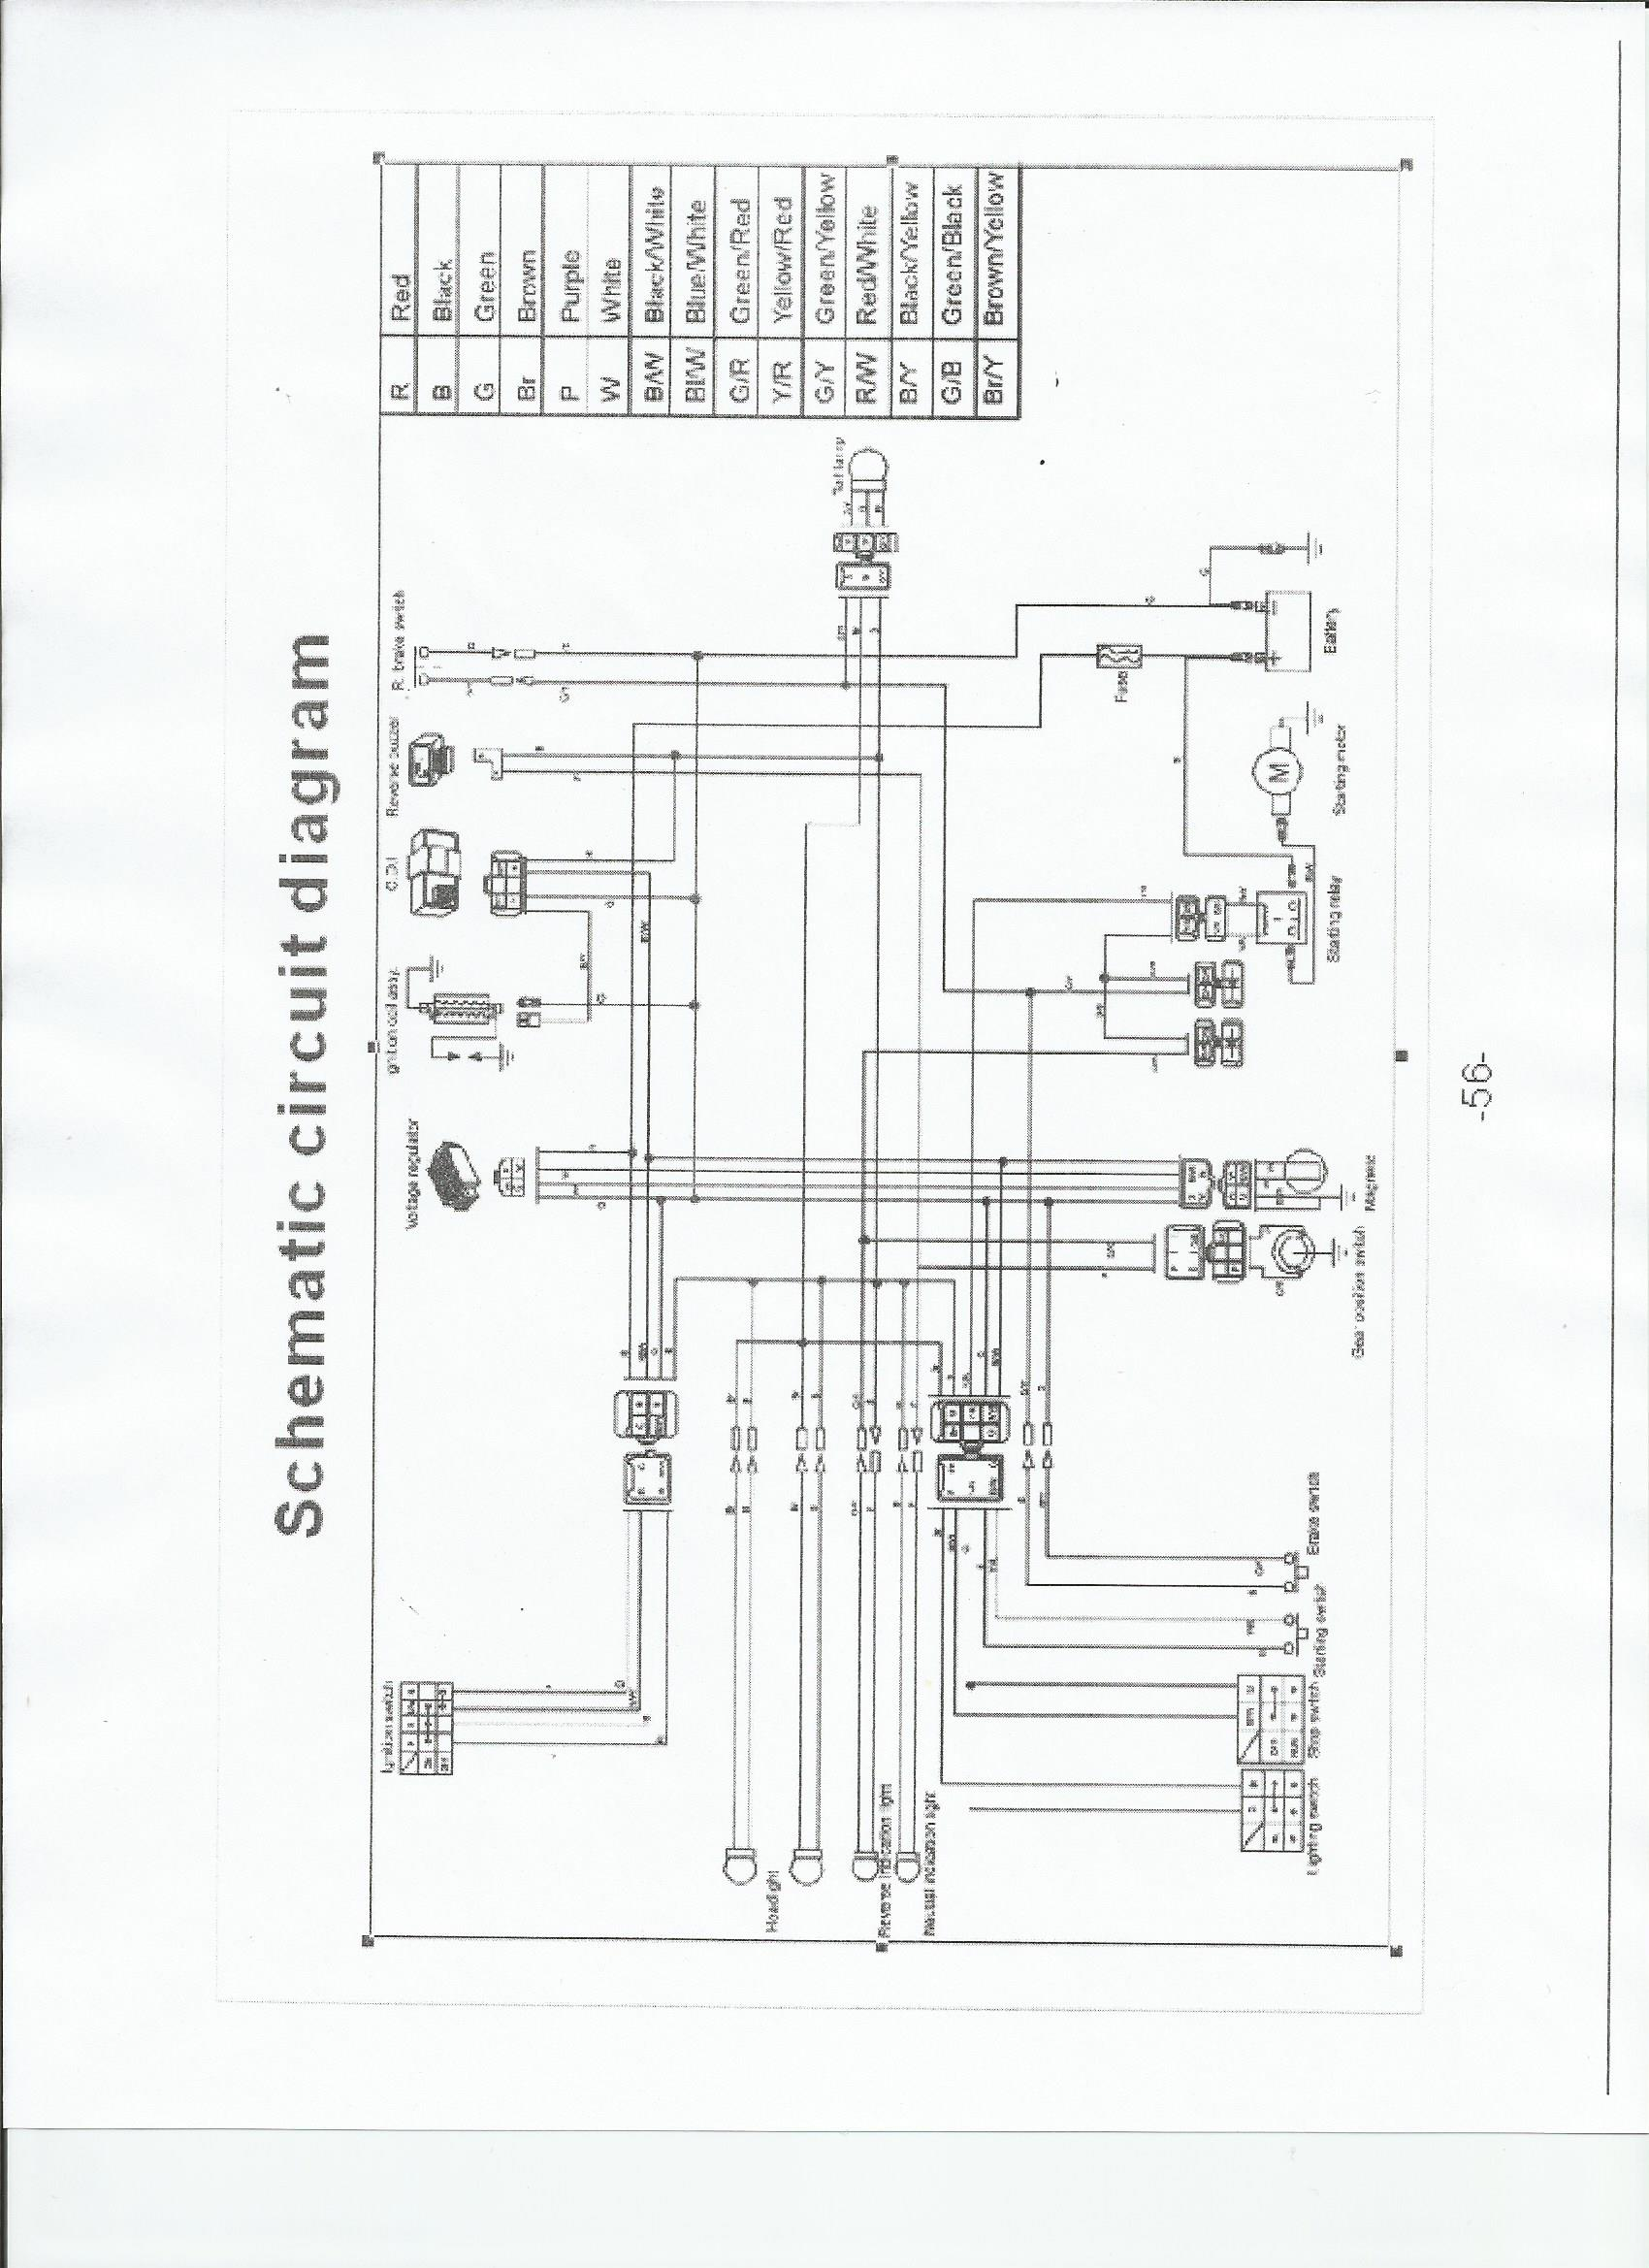 Mini Atv Wiring Diagram - Wiring Diagram 500  Cc Atv Engine Diagrams on